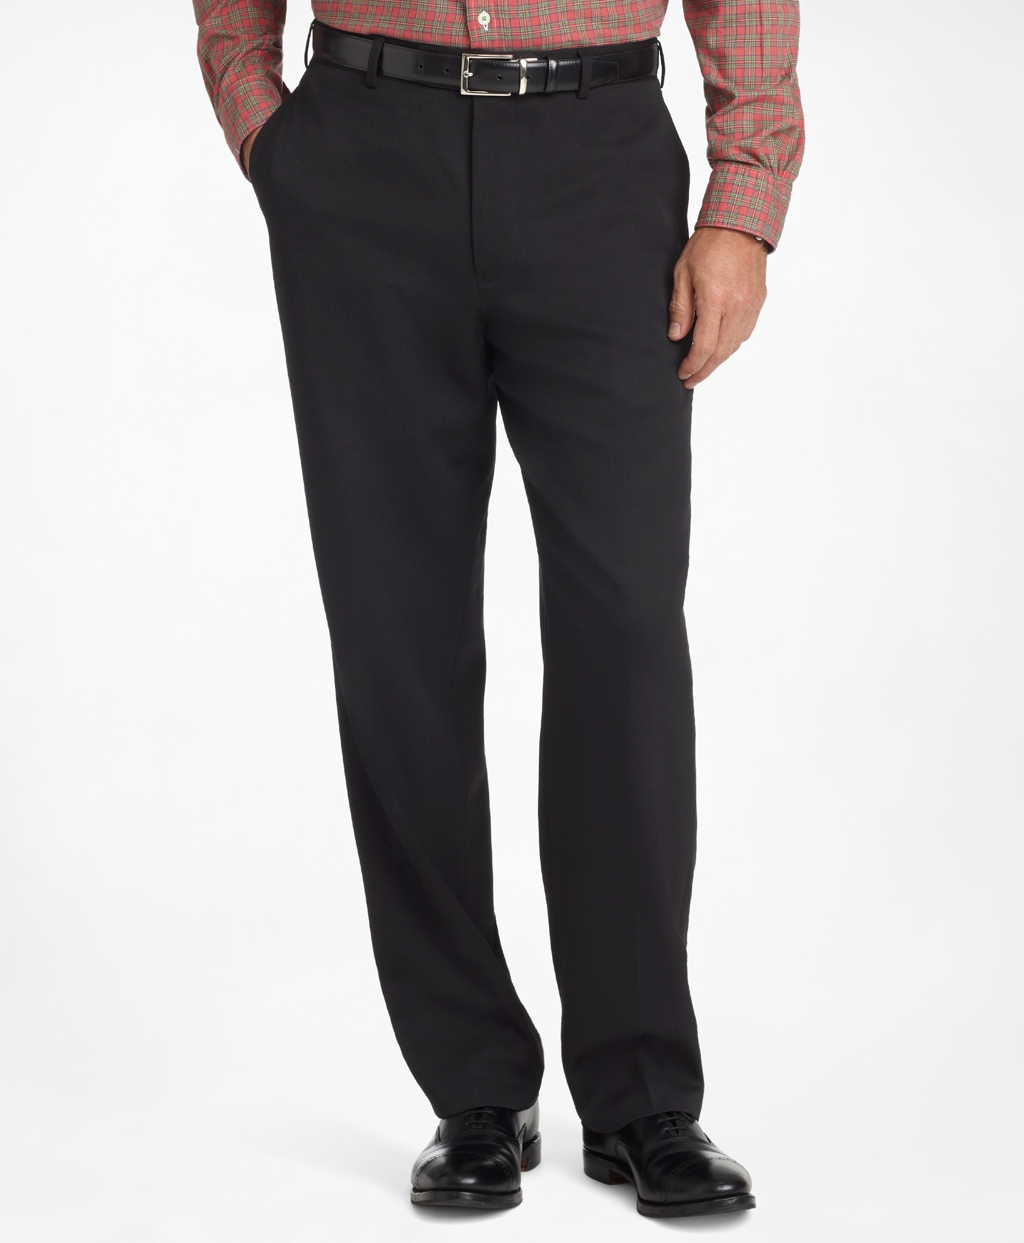 Shop Dillard's collection of pants for the latest styles of women's pants in a variety of patterns and materials. From casual and dress to printed and cropped pants Dillard's women's pant collection has .